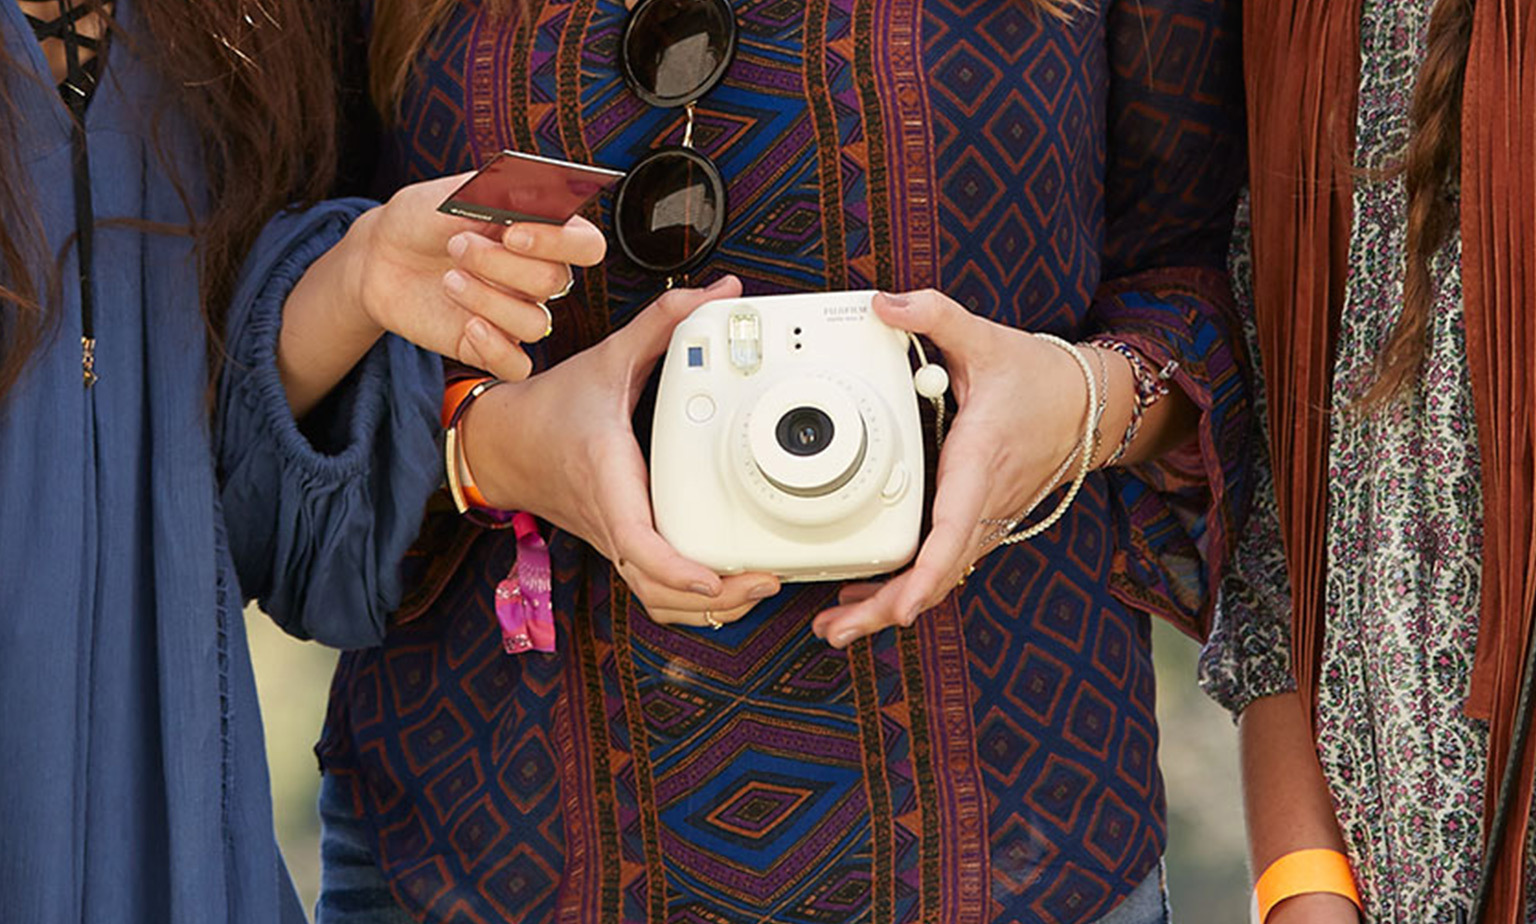 Click here to shop instant cameras